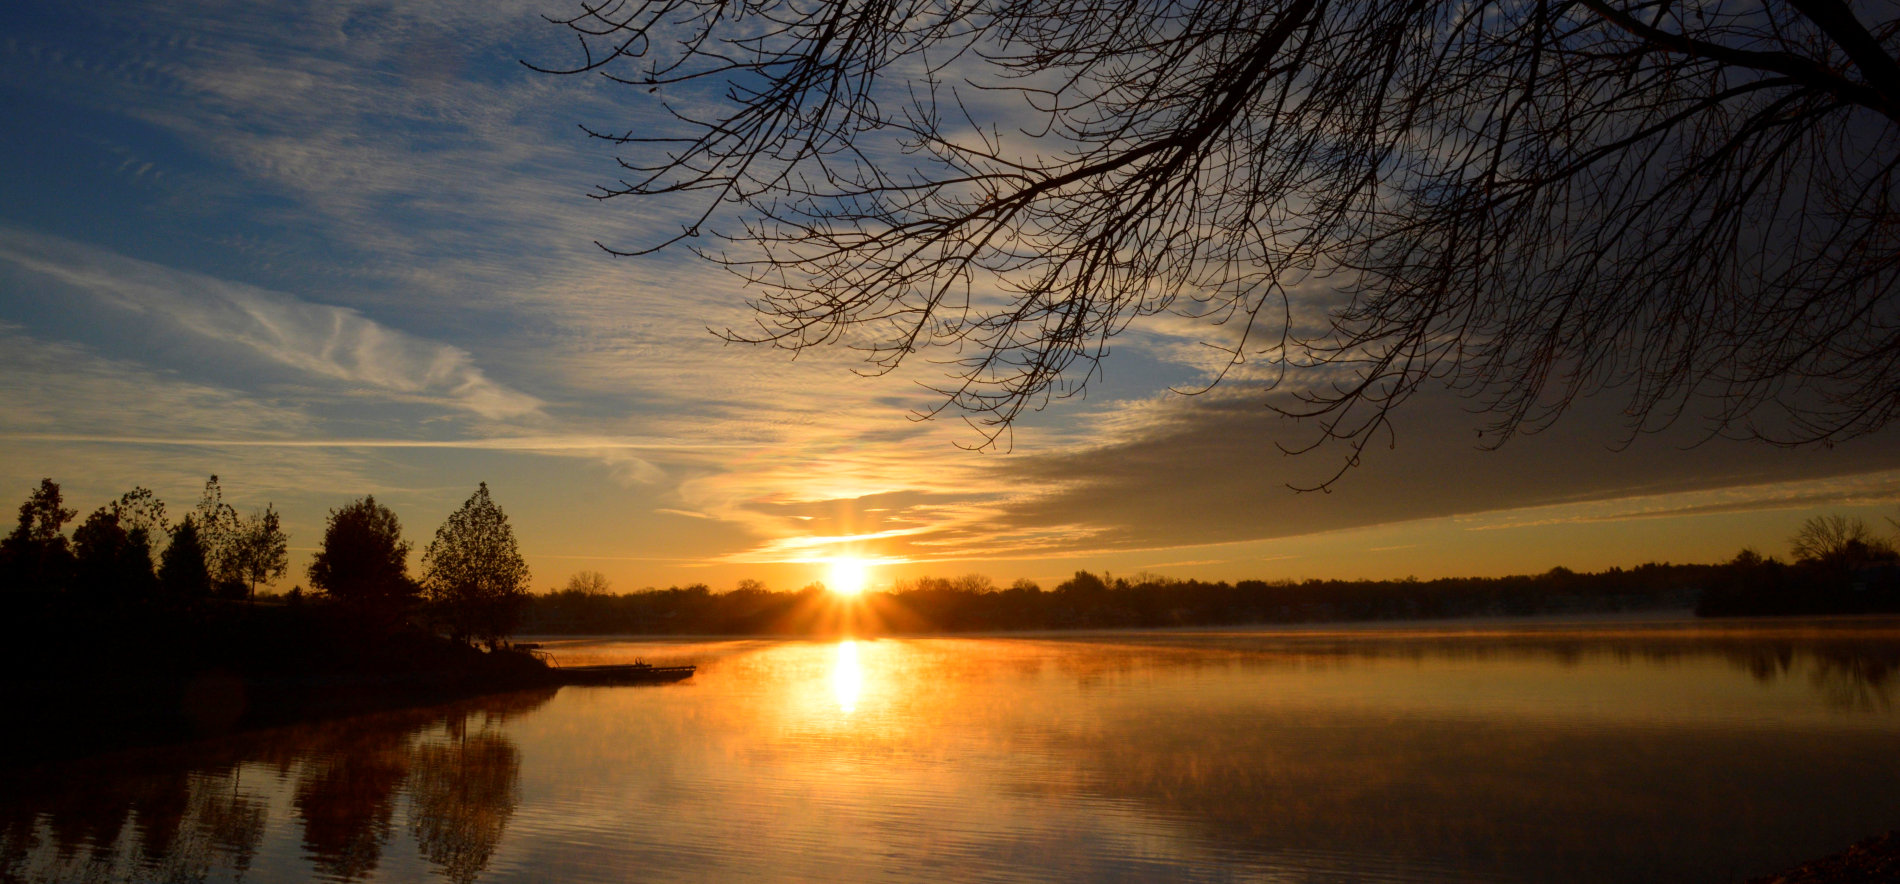 An image of a sunset over a lake with silhouettes of tree branches in the foreground, and whole bare trees off to the left and on the horizon.